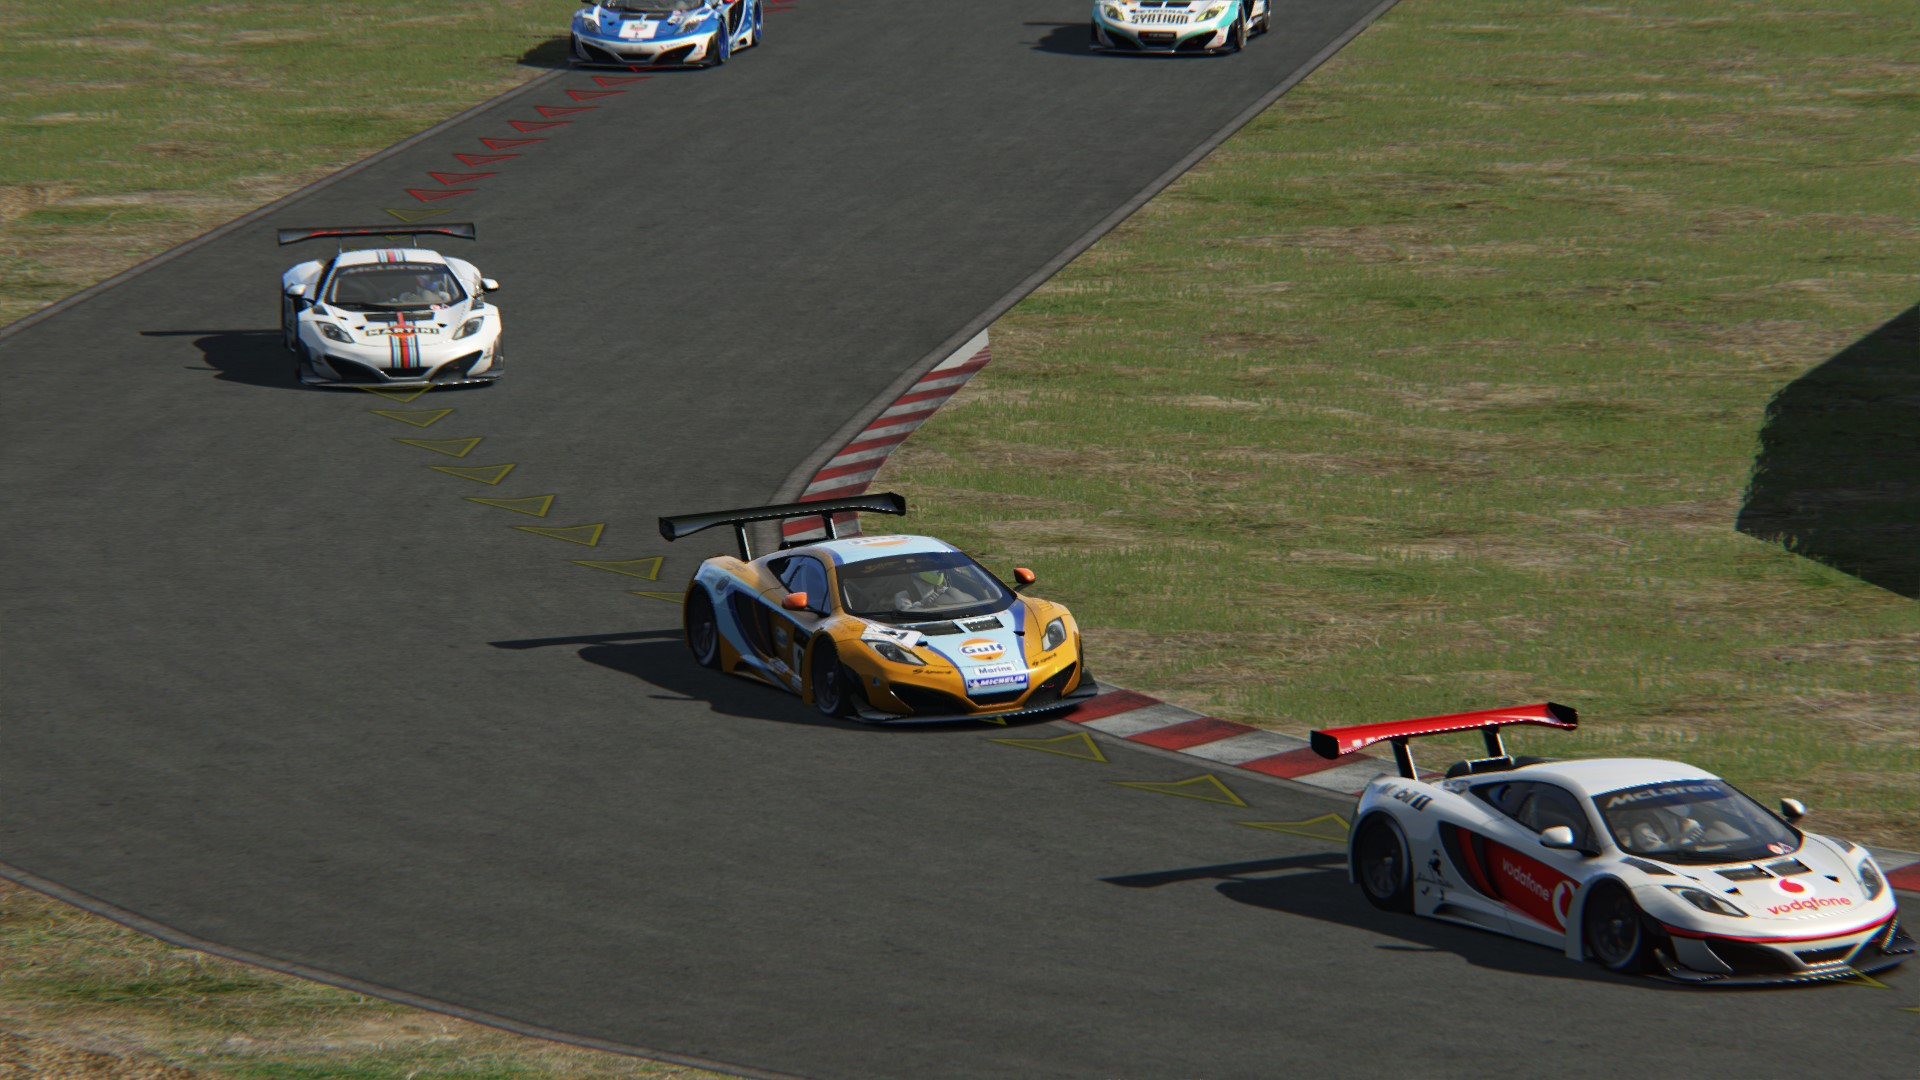 Screenshot_mclaren_mp412c_gt3_sportsland_sugo_7-4-116-10-20-38.jpg